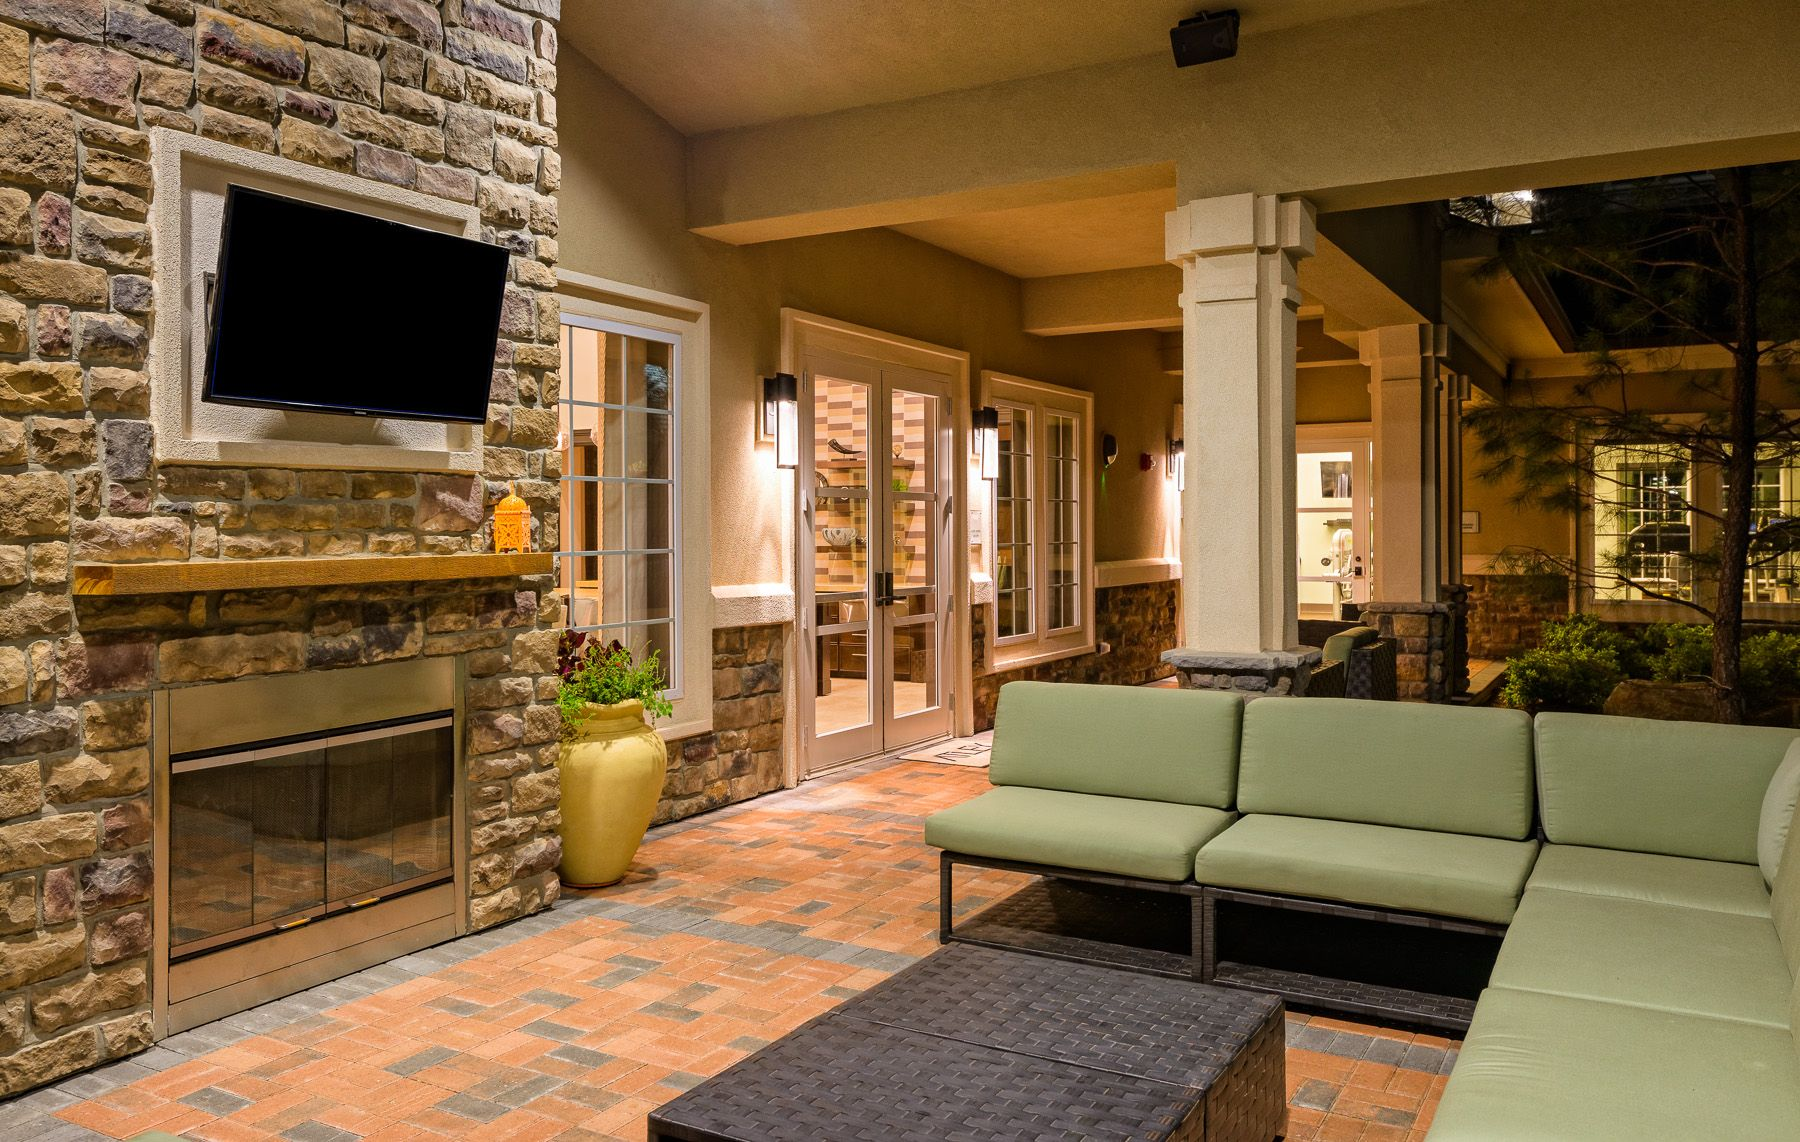 Stay Warm Near The Fireplace As You Watch Your Favorite Shows With Friends At Atley At The Greenway In Ashbur Virginia Apartments Modern Apartment House Styles